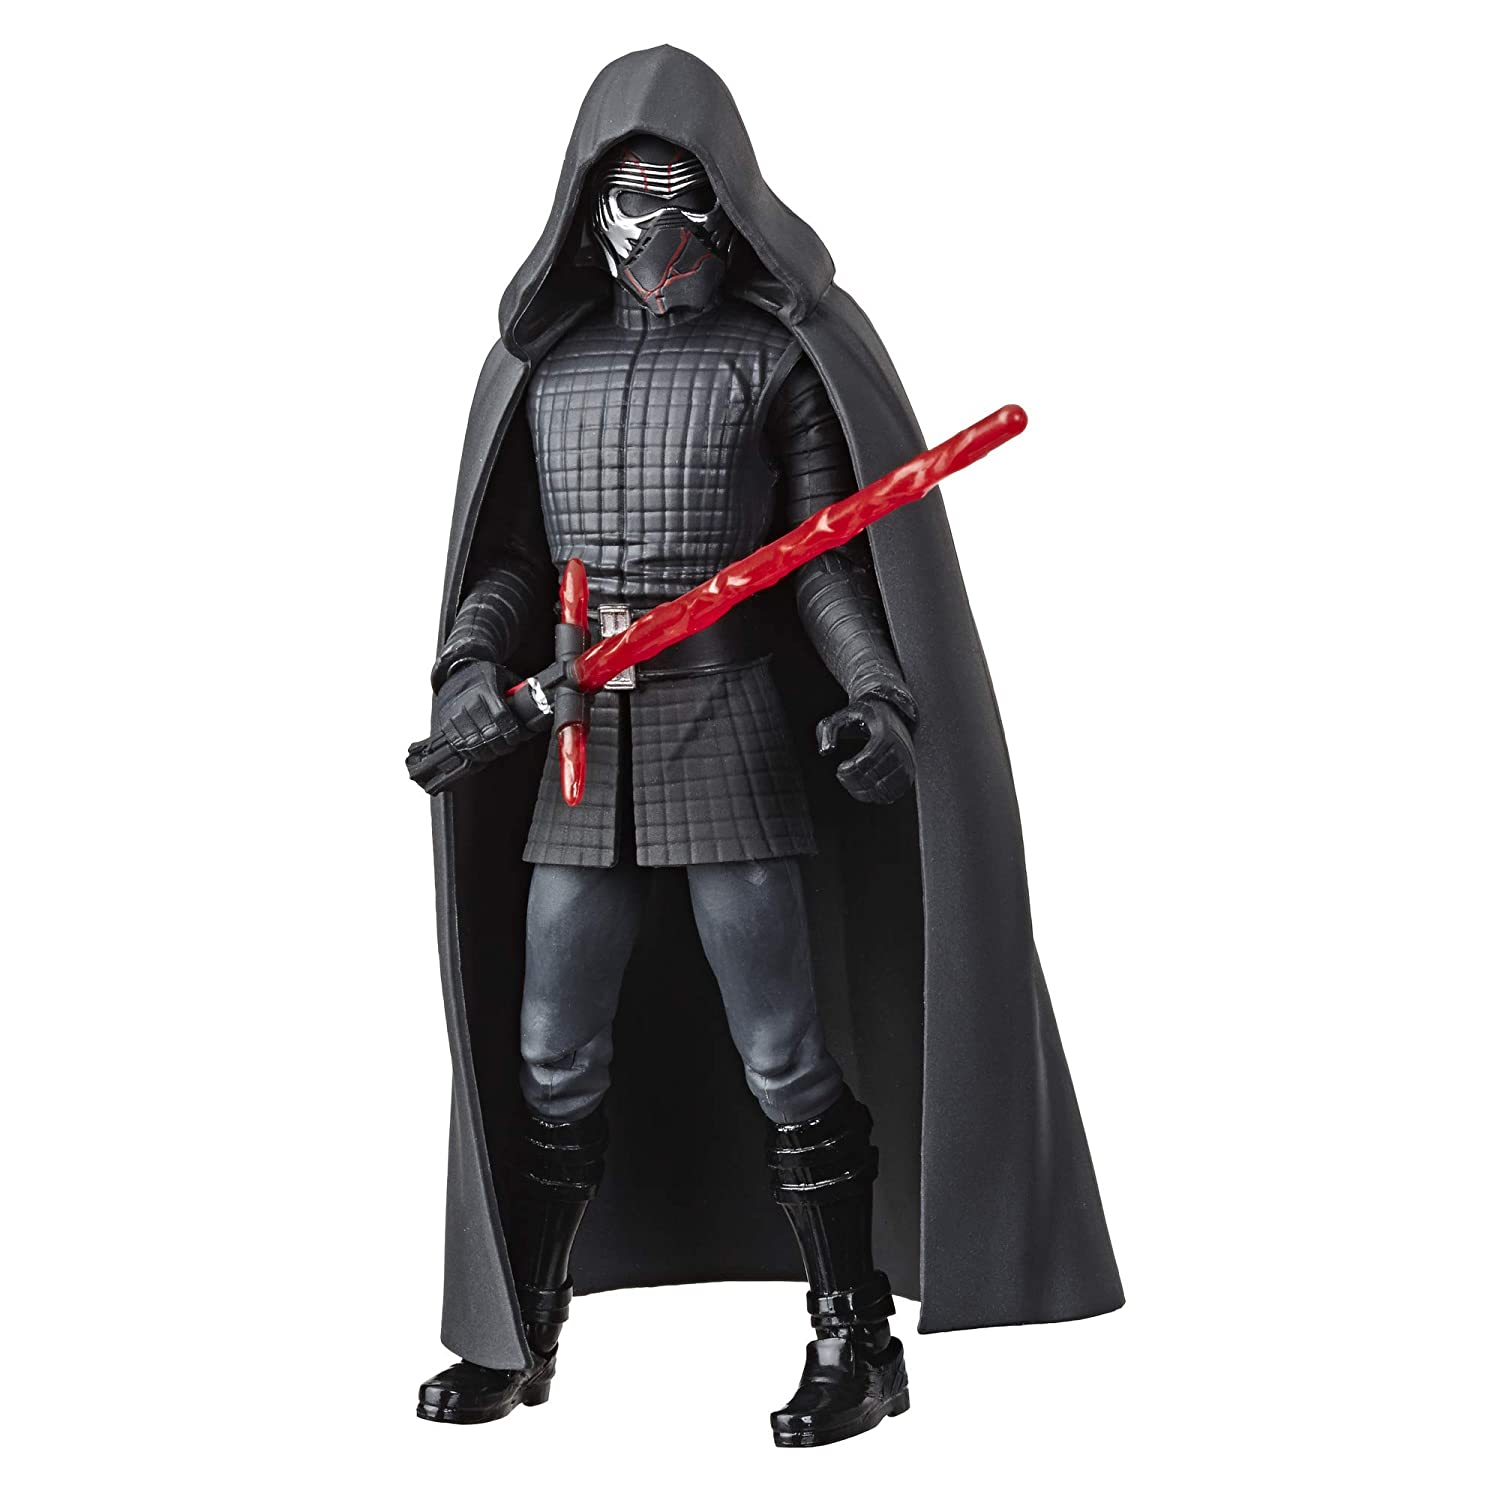 Star Wars Galaxy of Adventures Rise of The Skywalker Supreme Leader Kylo Ren 5-Scale Action Figure Toy with Fun Action Move